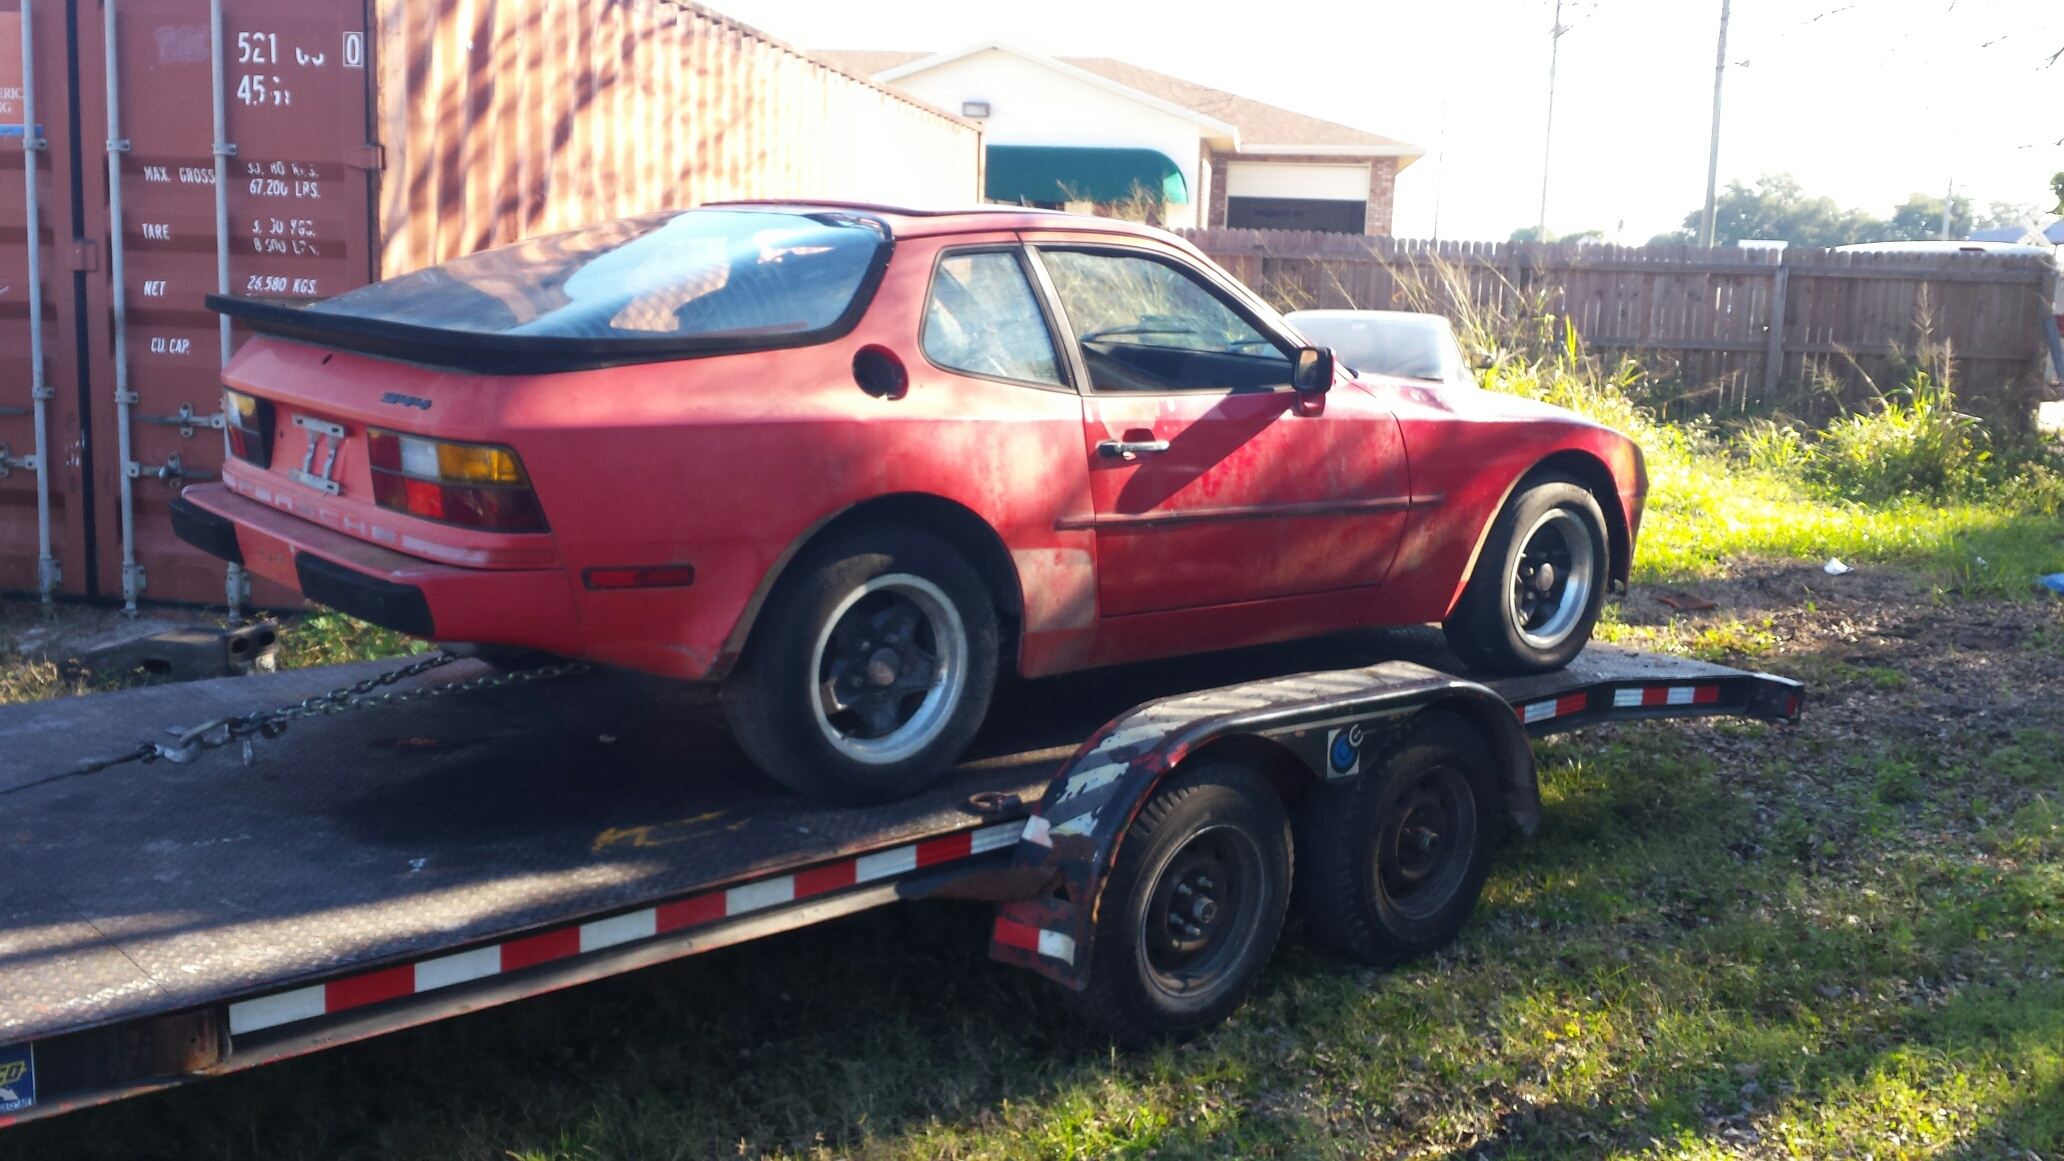 Porsche 944 (Recently Purchased by Junk Cars Orlando, LLC)